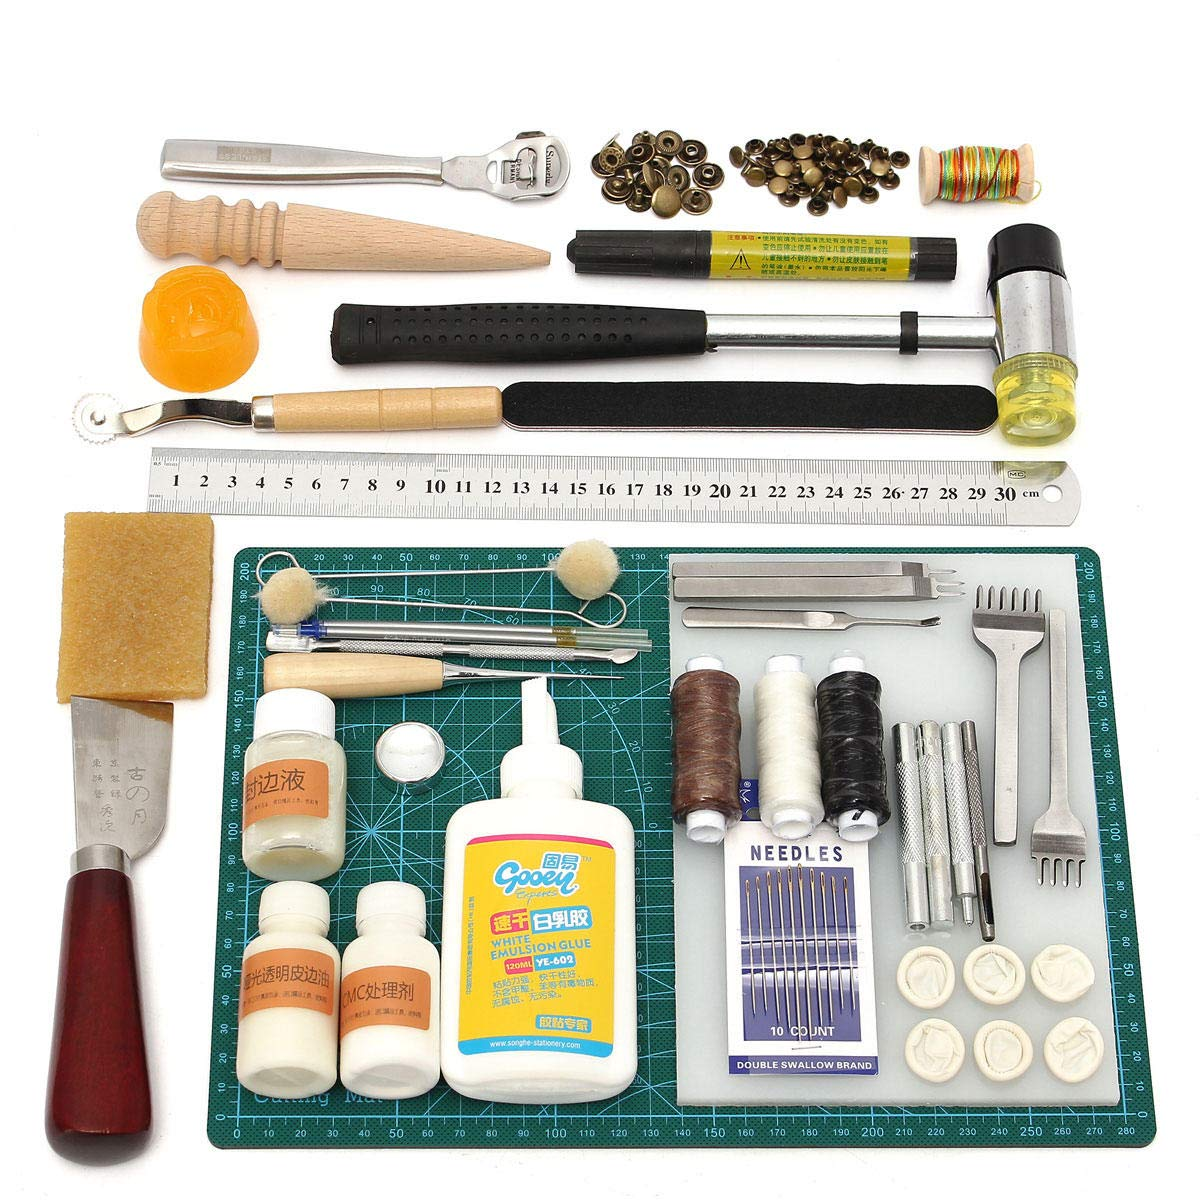 Leather Craft Tool Kit Leather Hand Sewing Tool Punch Cutter DIY Set by Anddoa (Image #1)